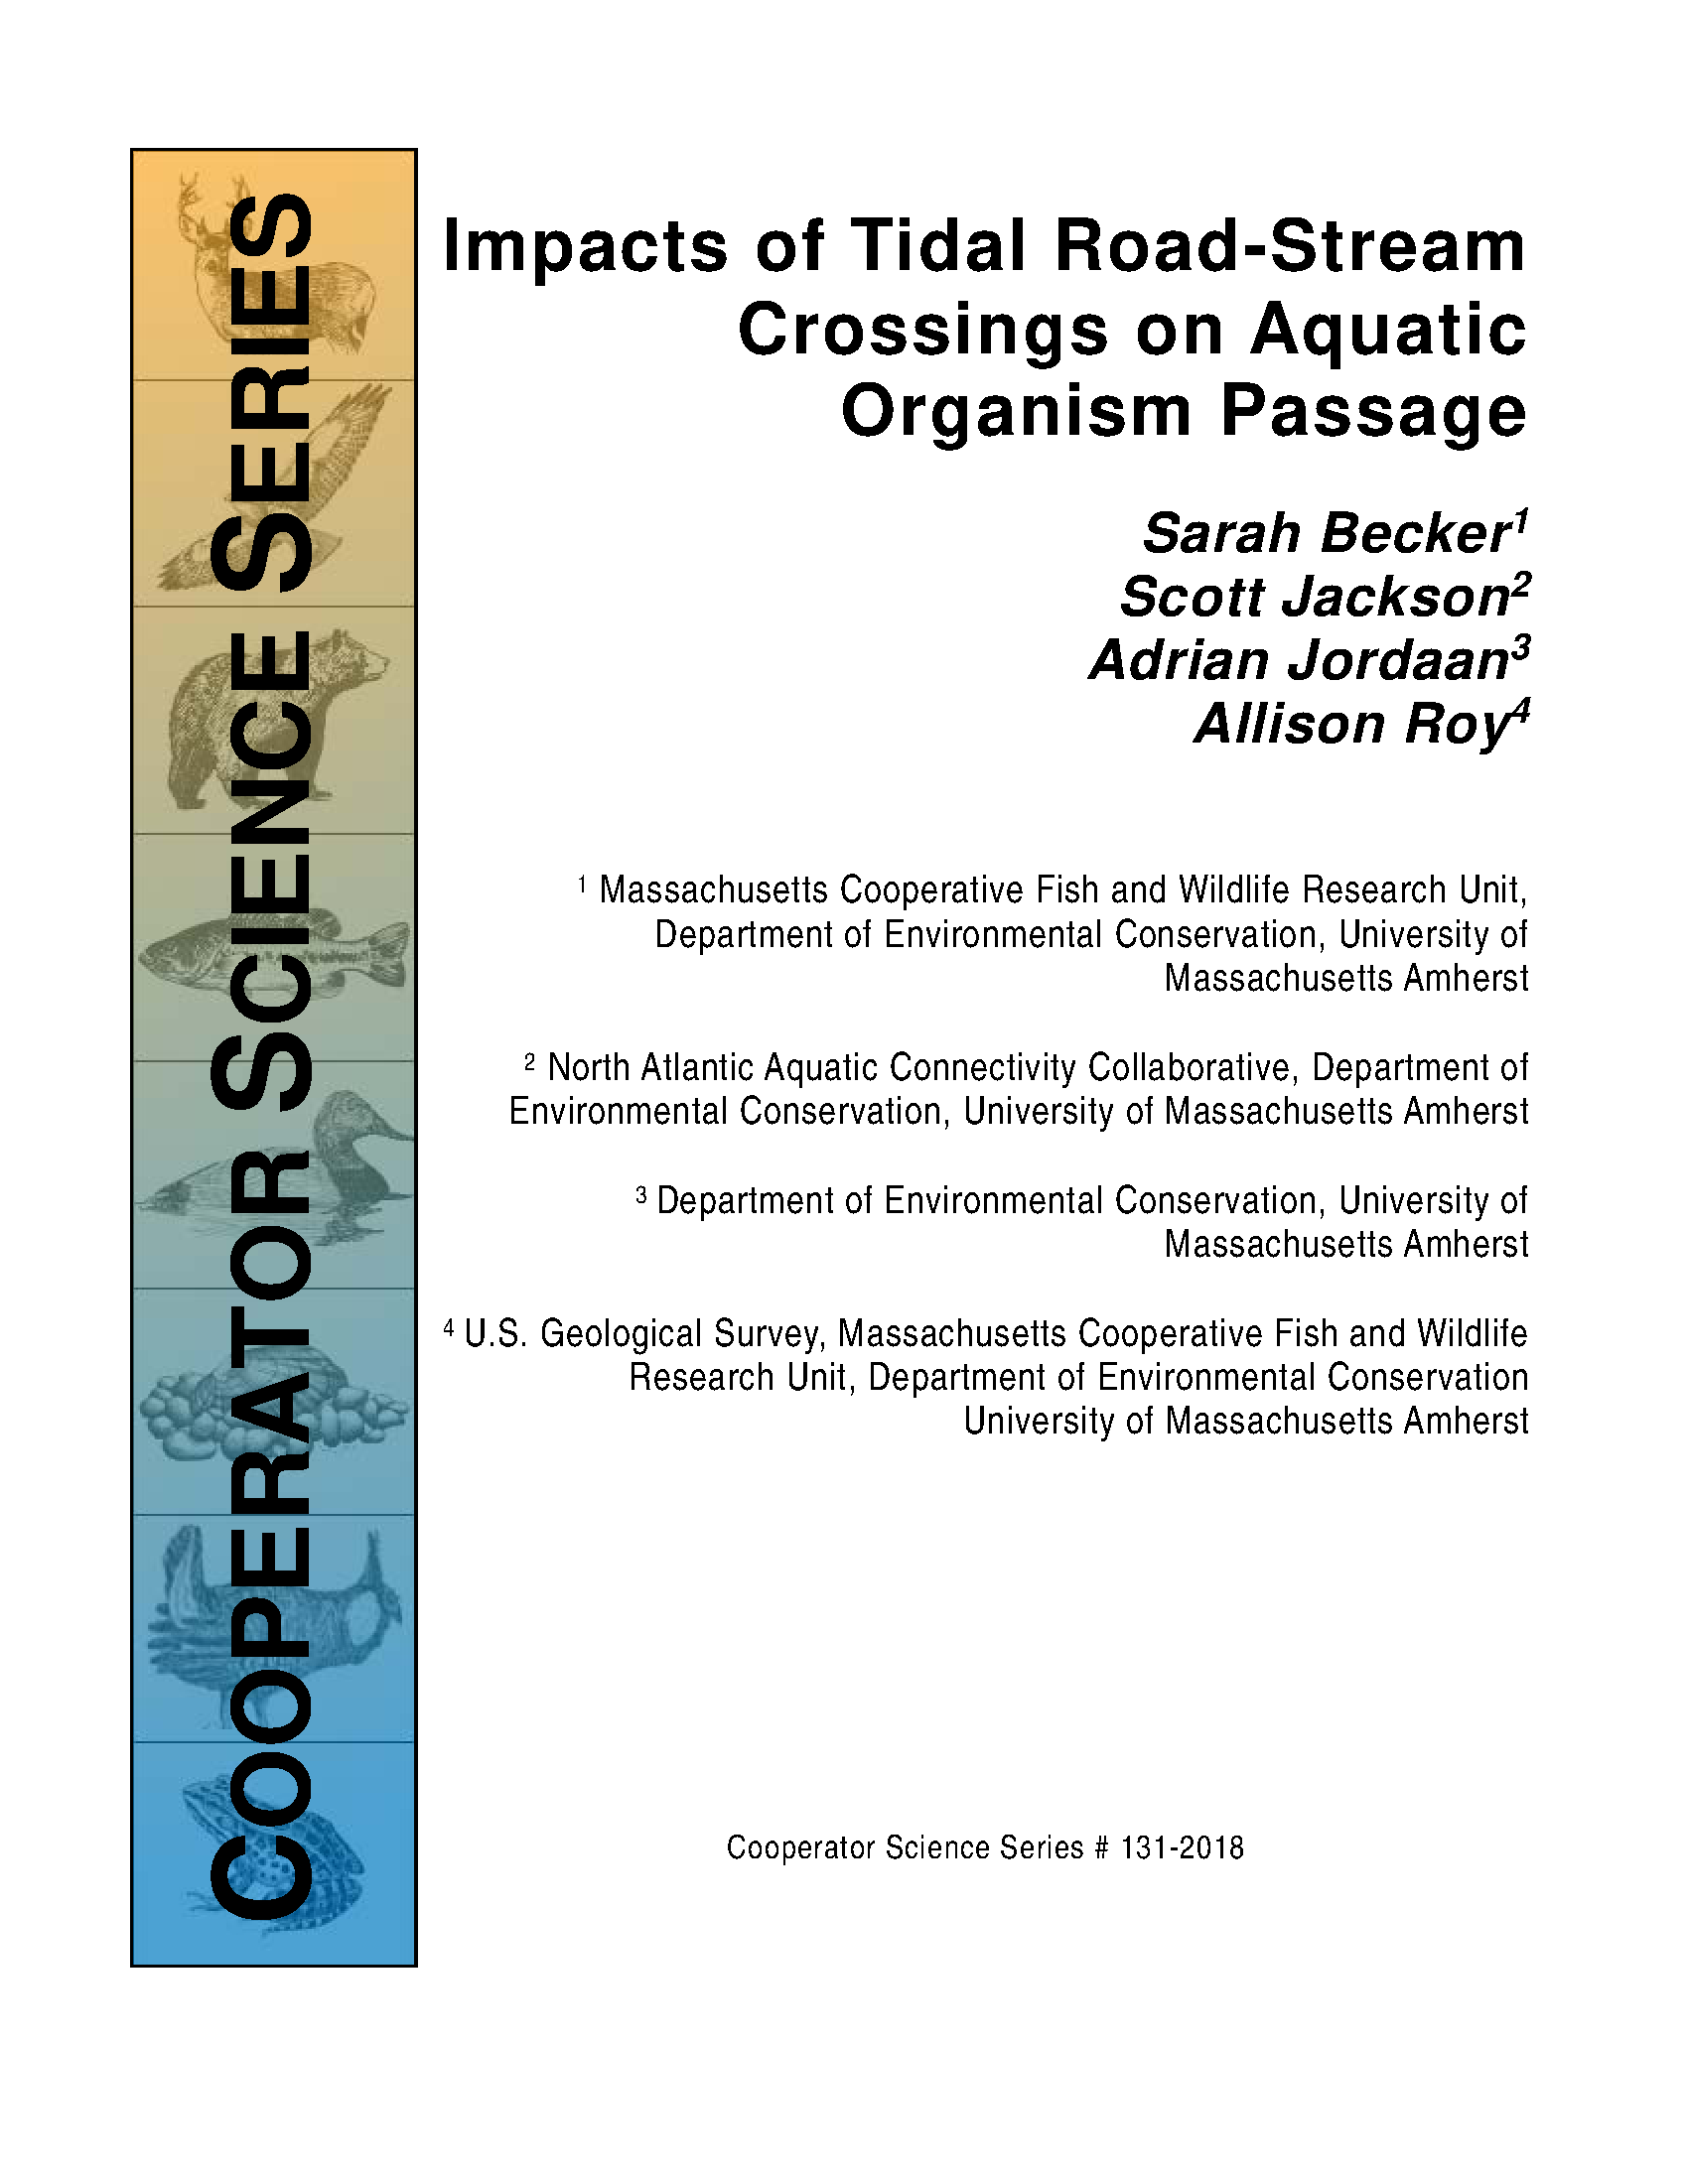 Impacts of Tidal Road-Stream Crossings on Aquatic Organism Passage